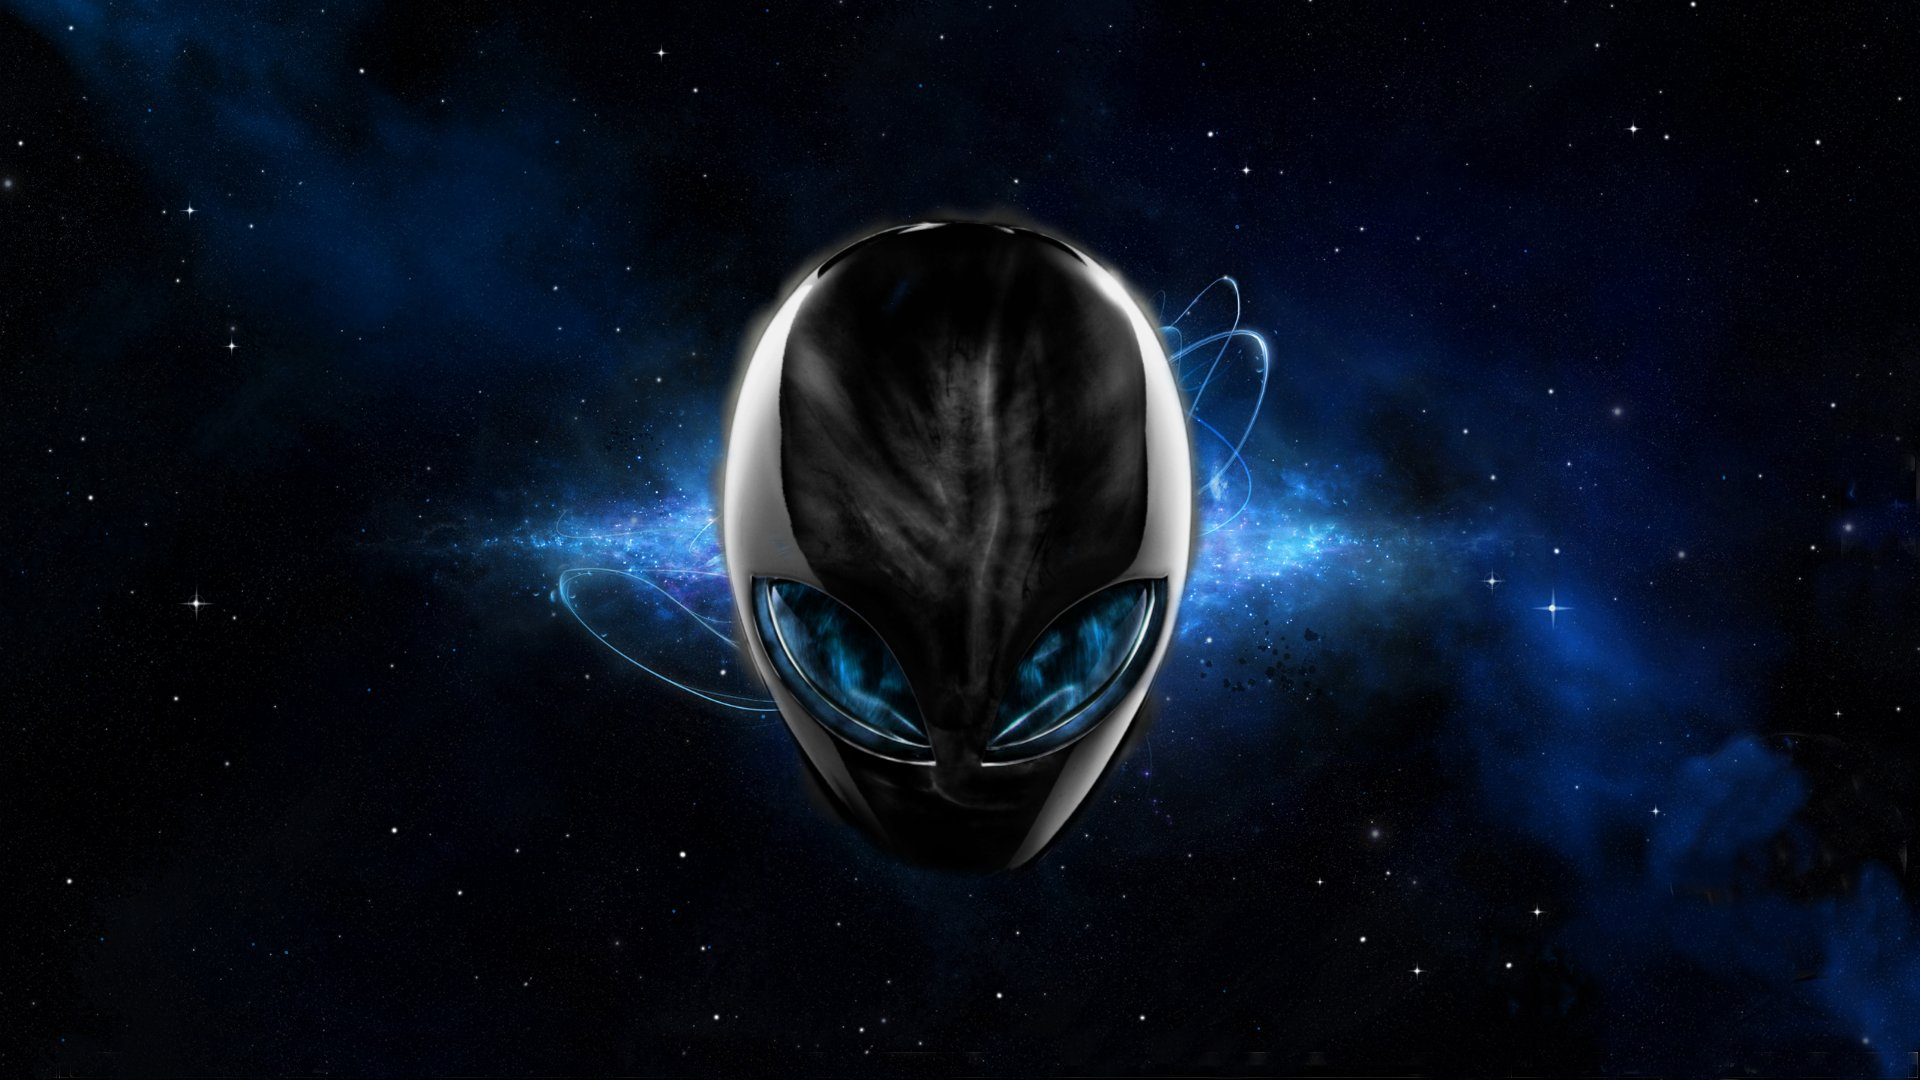 HD Alienware Wallpapers 19201080 Alienware Backgrounds for Laptops 1920x1080